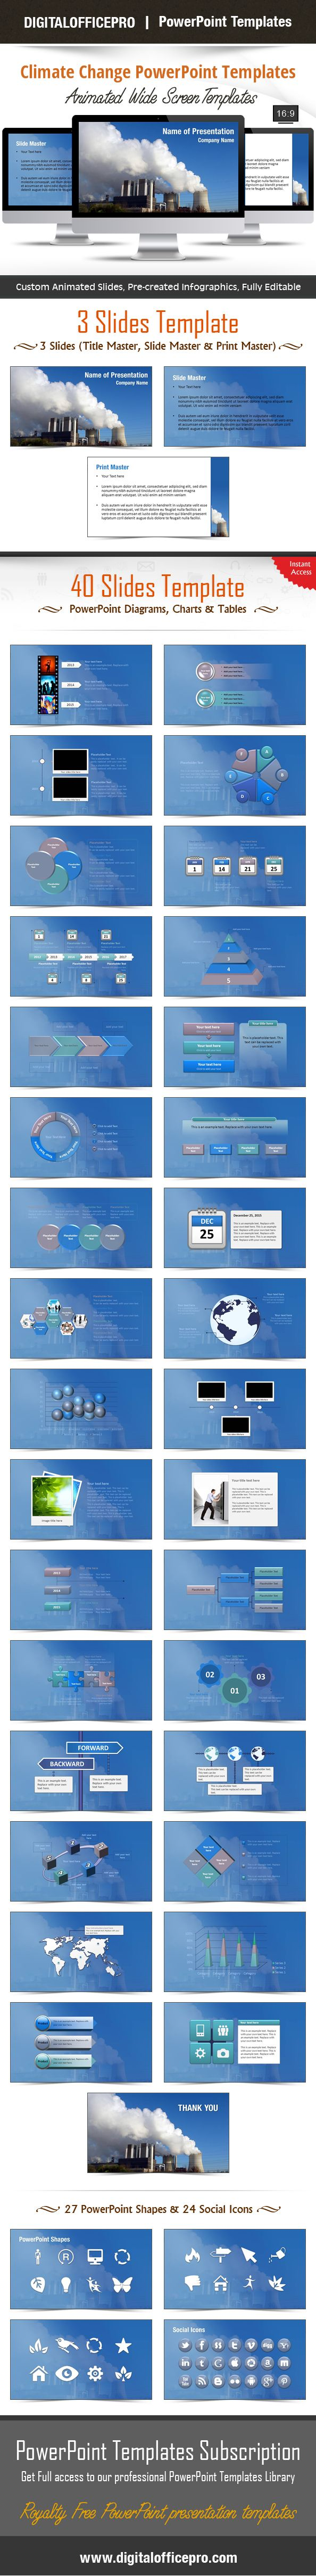 Impress and Engage your audience with Climate Change PowerPoint Template and Climate Change PowerPoint Backgrounds from DigitalOfficePro. Each template comes with a set of PowerPoint Diagrams, Charts & Shapes and are available for instant download.